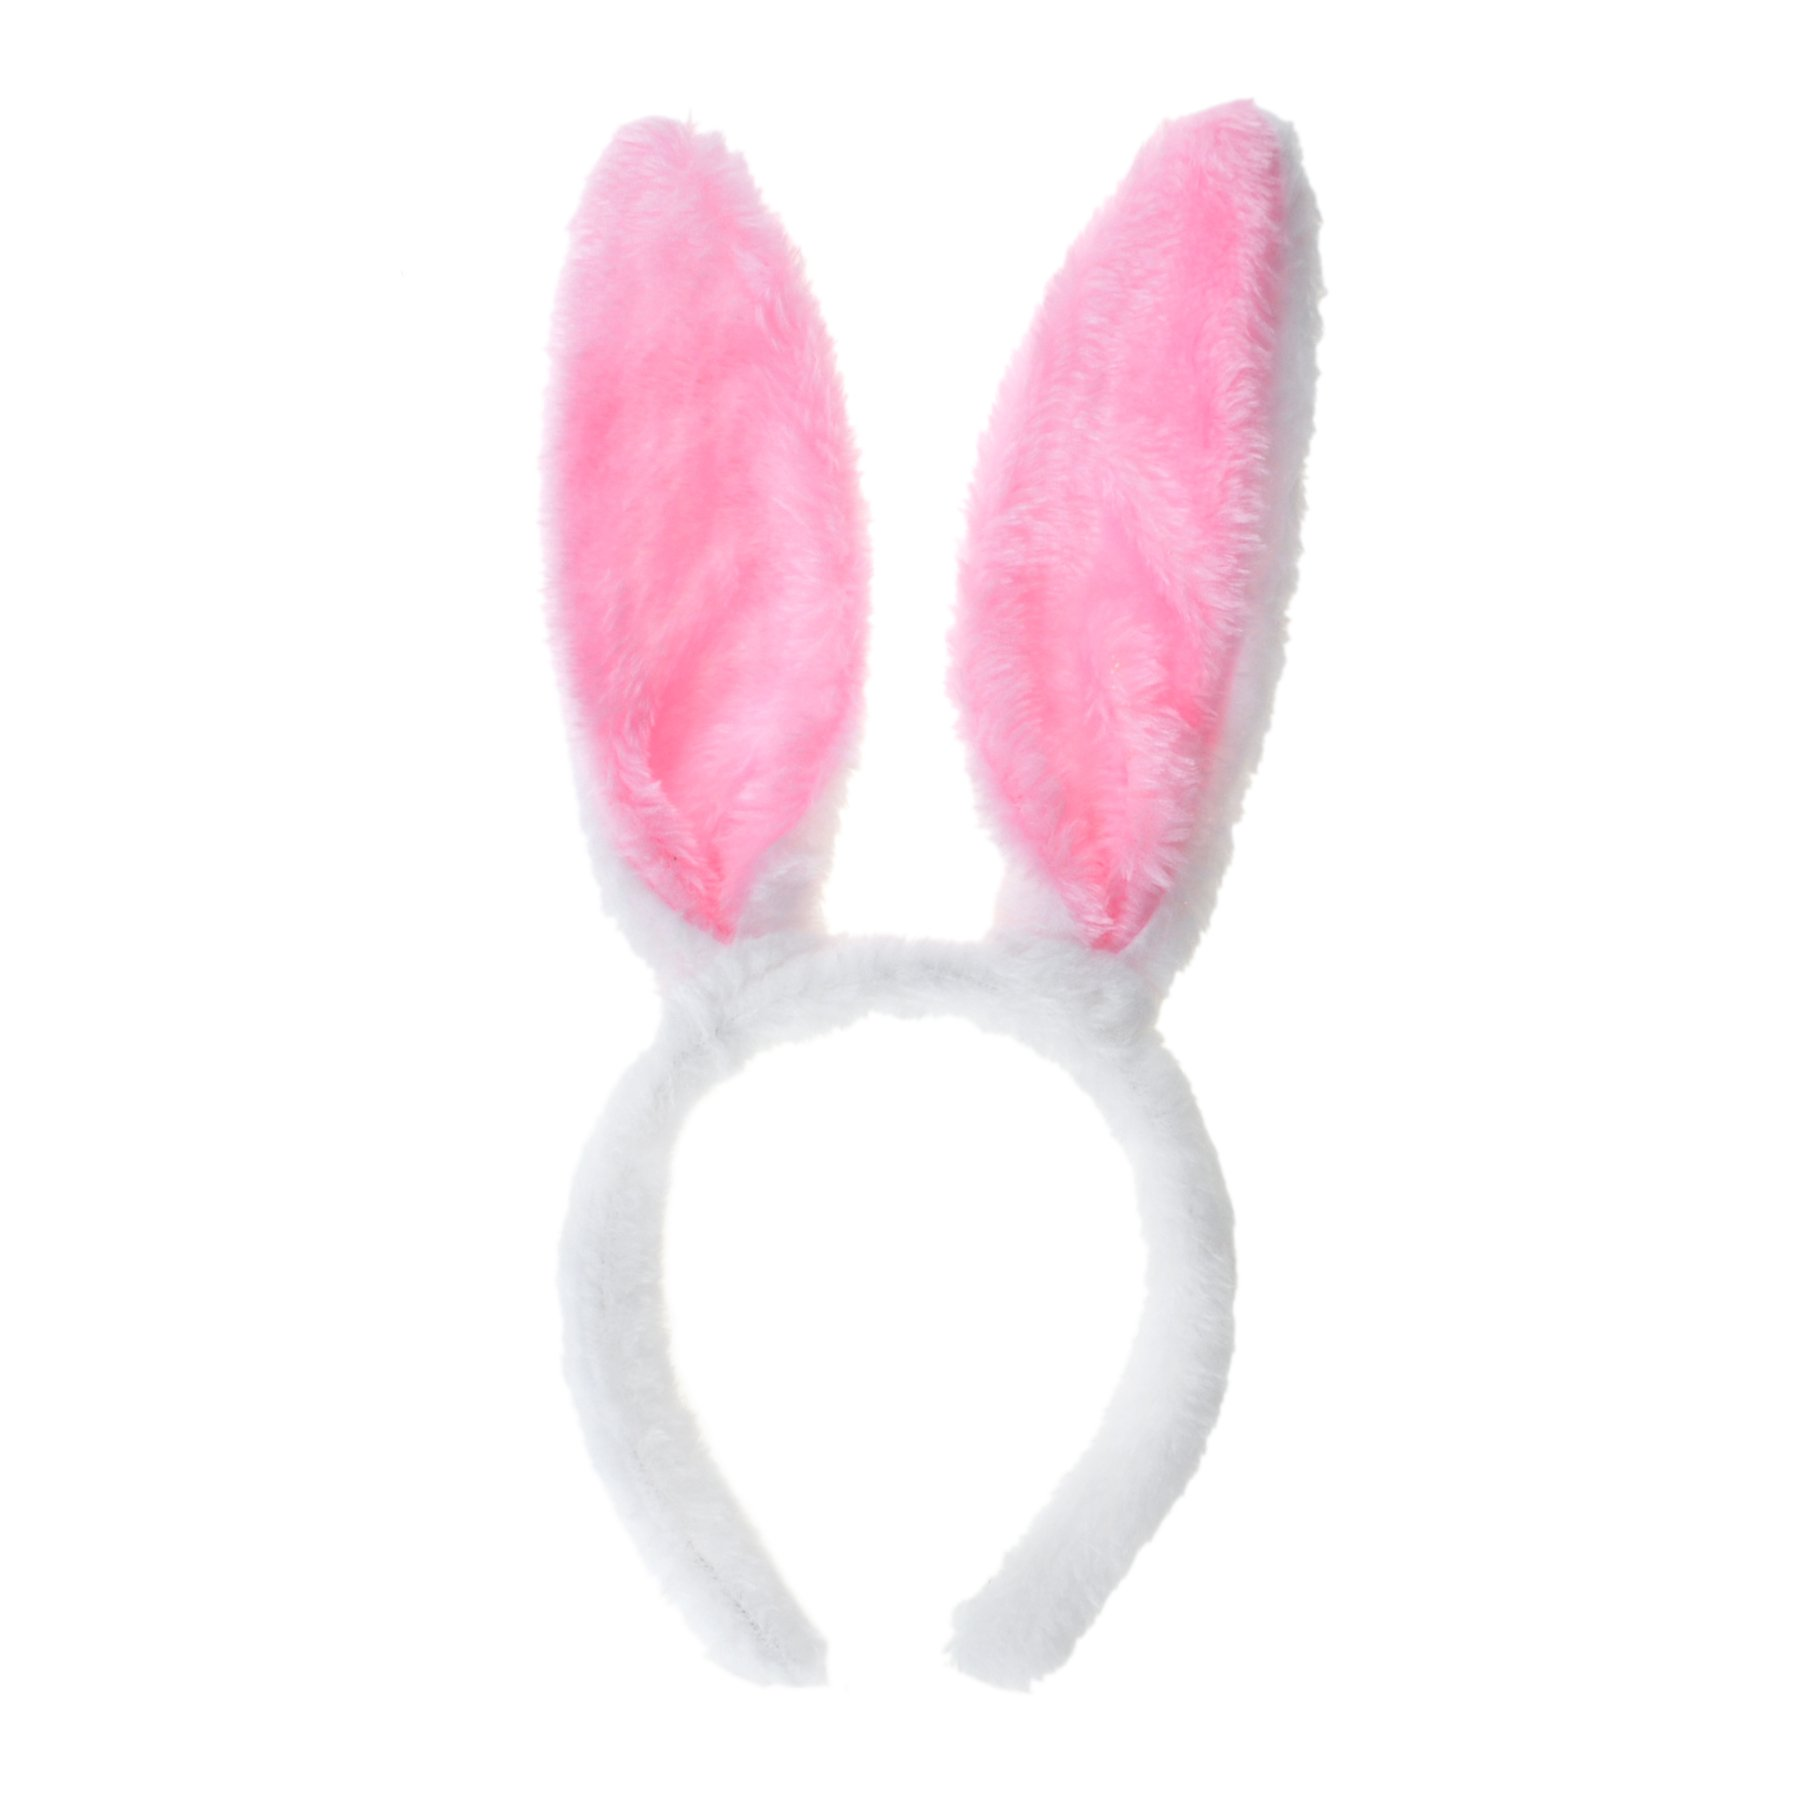 Toptie Wholesale Bunny Ears Headband, Soft Touch Plush Cosplay Party Accessory-Pink-120PCS by TopTie